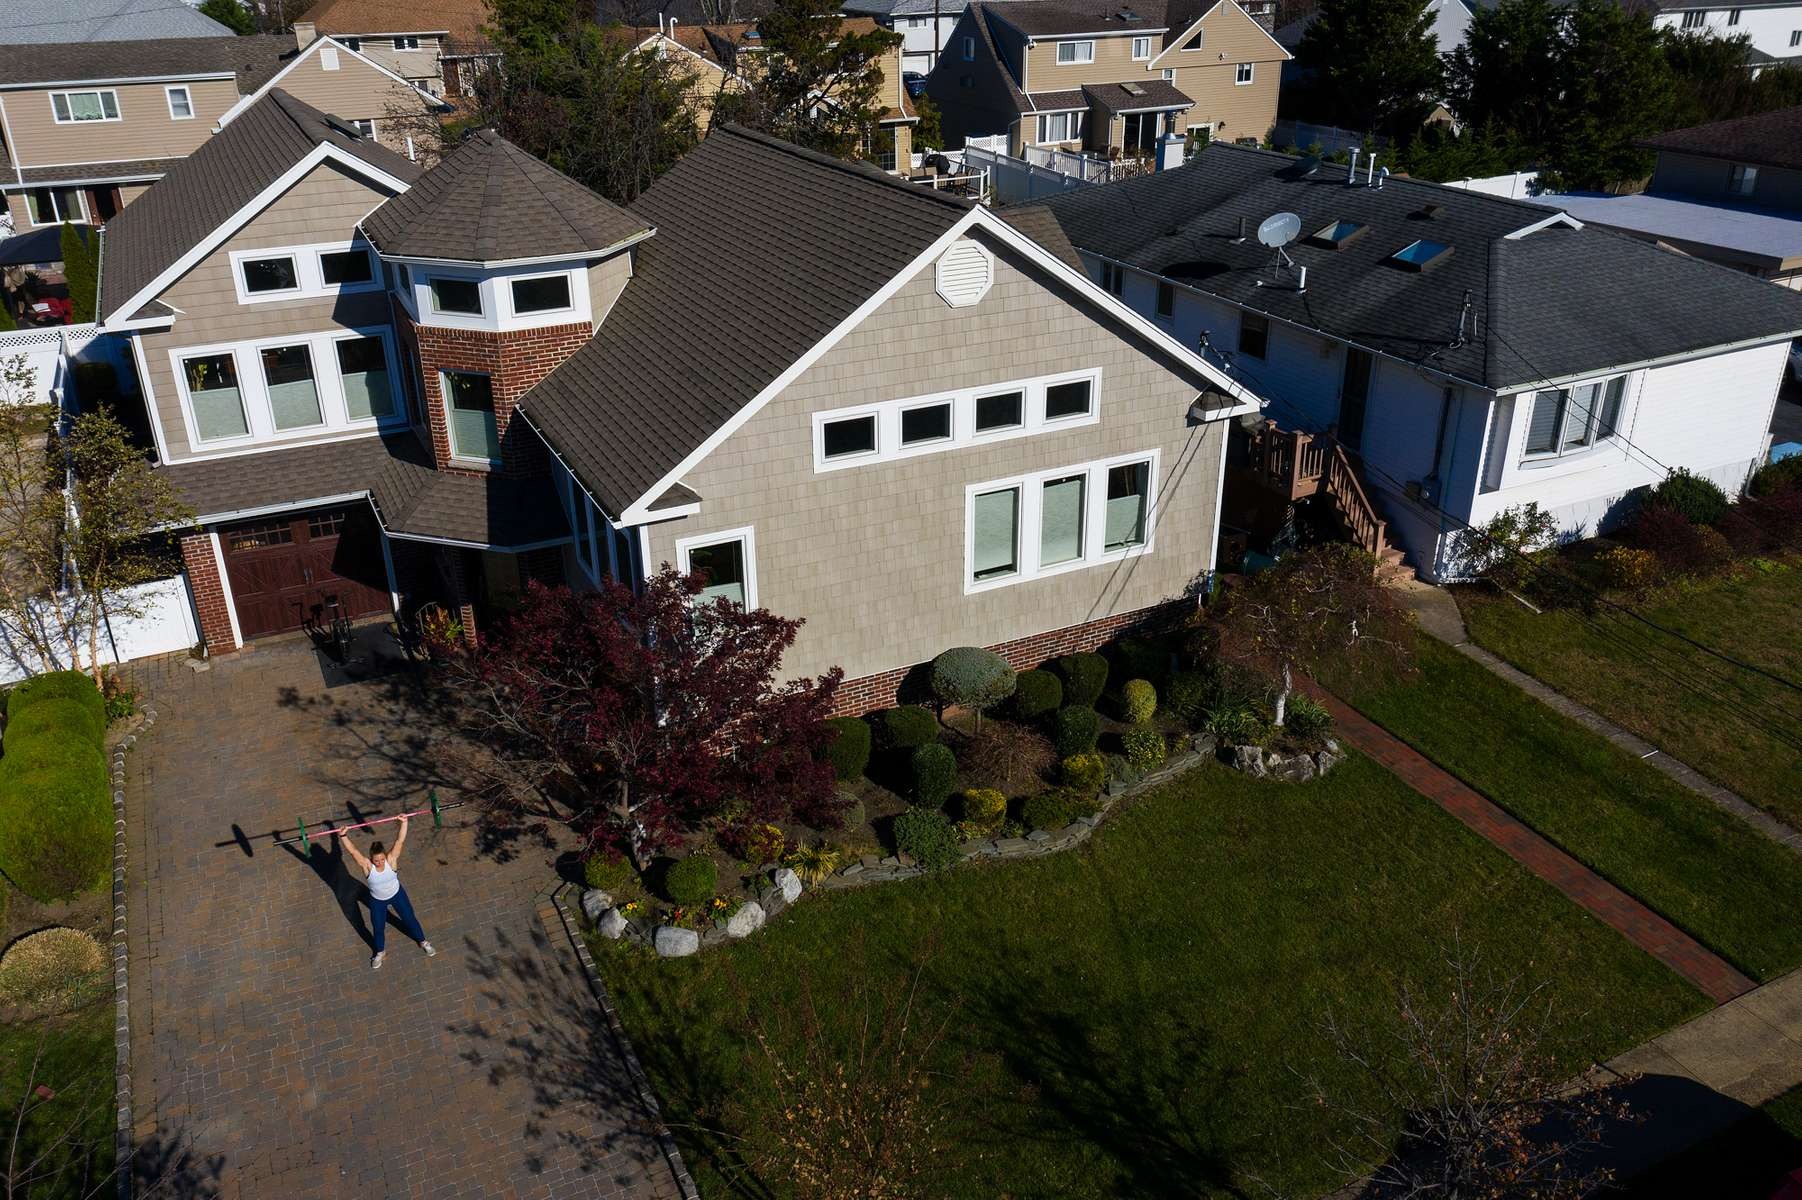 An aerial view of Alexa Hoovis exercising in her driveway after a training session with her virtual Fitness Trainer Dennis Guerrero on November 20th, 2020 in Oceanside, New York.  In March of 2014, Dennis Guerrero and his business partner opened a gym on Long Island. The pair shared a passion for fitness, a dream of creating a local community of like-minded people and a willingness to take a risk. Over the next six years, hundreds of members experienced and embraced a unique environment that fostered a palpable energy, helping athletes of all ages and abilities reach their potential.  The gym became a place to share achievements, work through losses and overcome illness. But like so many other businesses, it seemingly had no way of overcoming the financial impact and ongoing uncertainty of a global pandemic. With the arrival of Covid-19, the gym shut its doors back in March, with no idea when it would reopen. The owners, though, were far from done. They lent out every piece of equipment they owned to the gym's members, continued to pay their staff and worked to set up outdoor classes in hopes of keeping their membership active and healthy. As the shutdown stretched on, it became clear that the physical gym was closed for good.  They have since reinvented themselves and are now called Life Outside the Box.  Their business model has changed drastically, and all their workouts have gone virtual.  The workouts are conducted by a small group of fitness trainers led by Guerrero.  The members pay a monthly fee and can take live Zoom fitness classes.  They are coached by the virtual trainers in real time.  More and more people have reconstructed their garages, spare rooms, backyards, and basements into home gyms since the COVID-19 pandemic hit the United States.